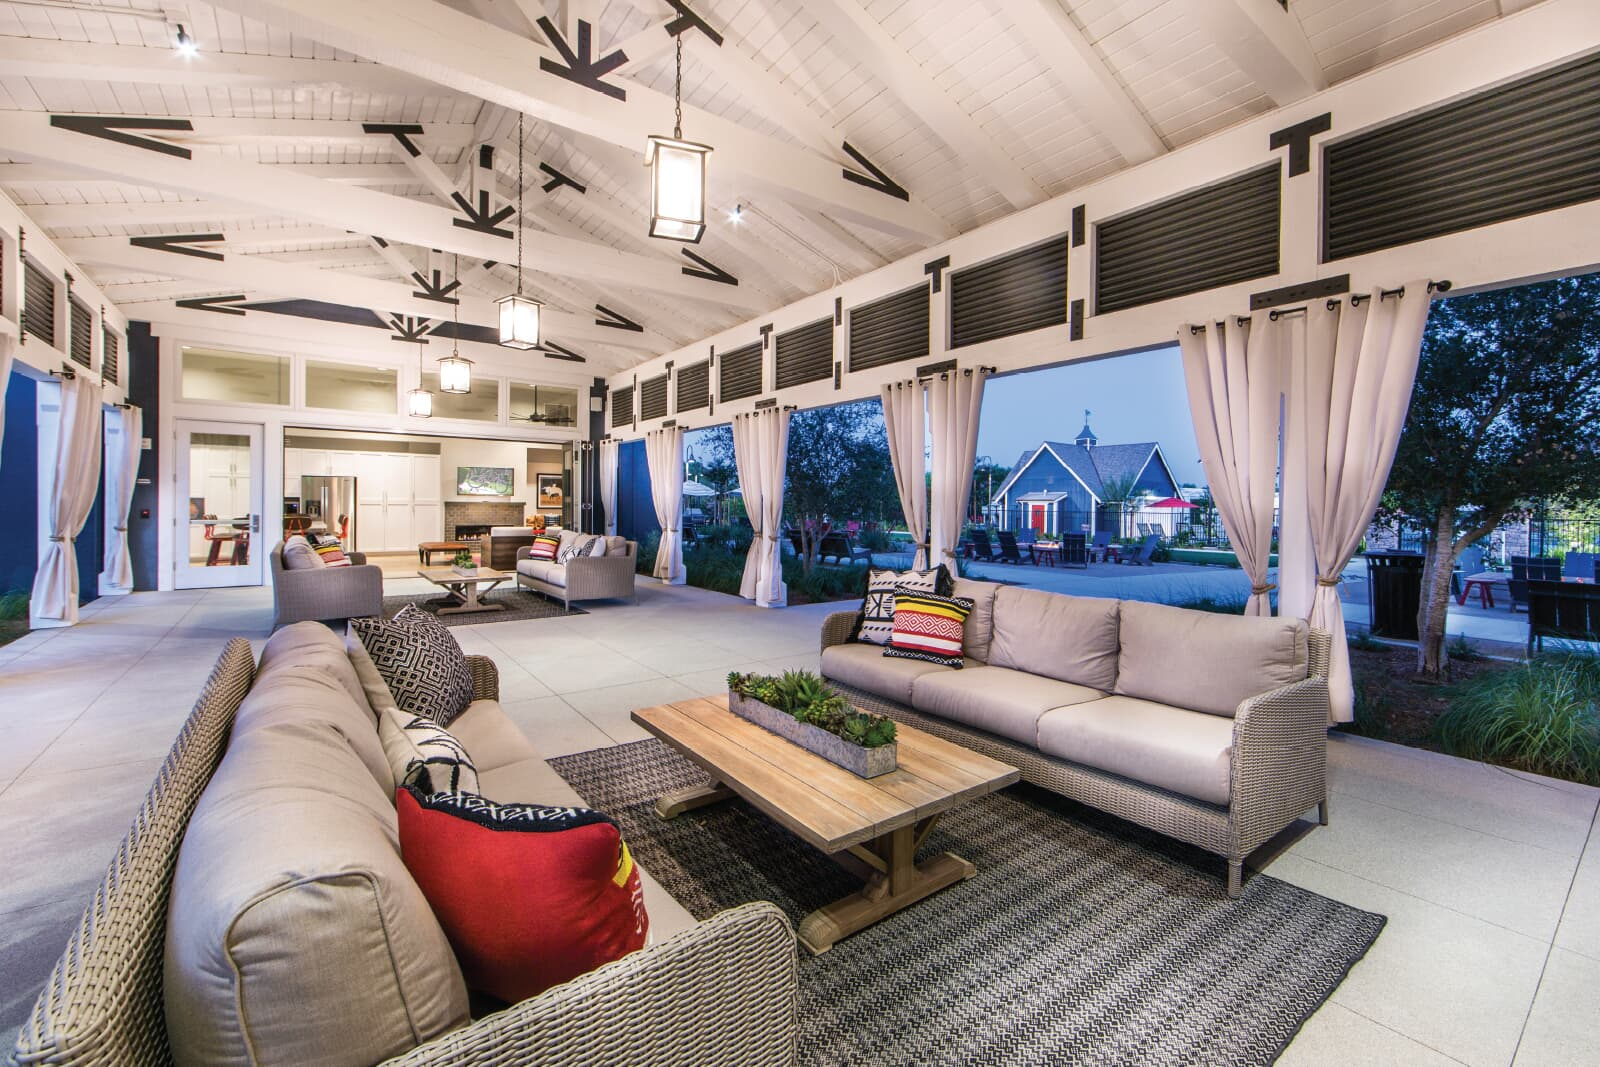 The Ranch House | Audie Murphy Ranch in Menifee, CA | Brookfield Residential